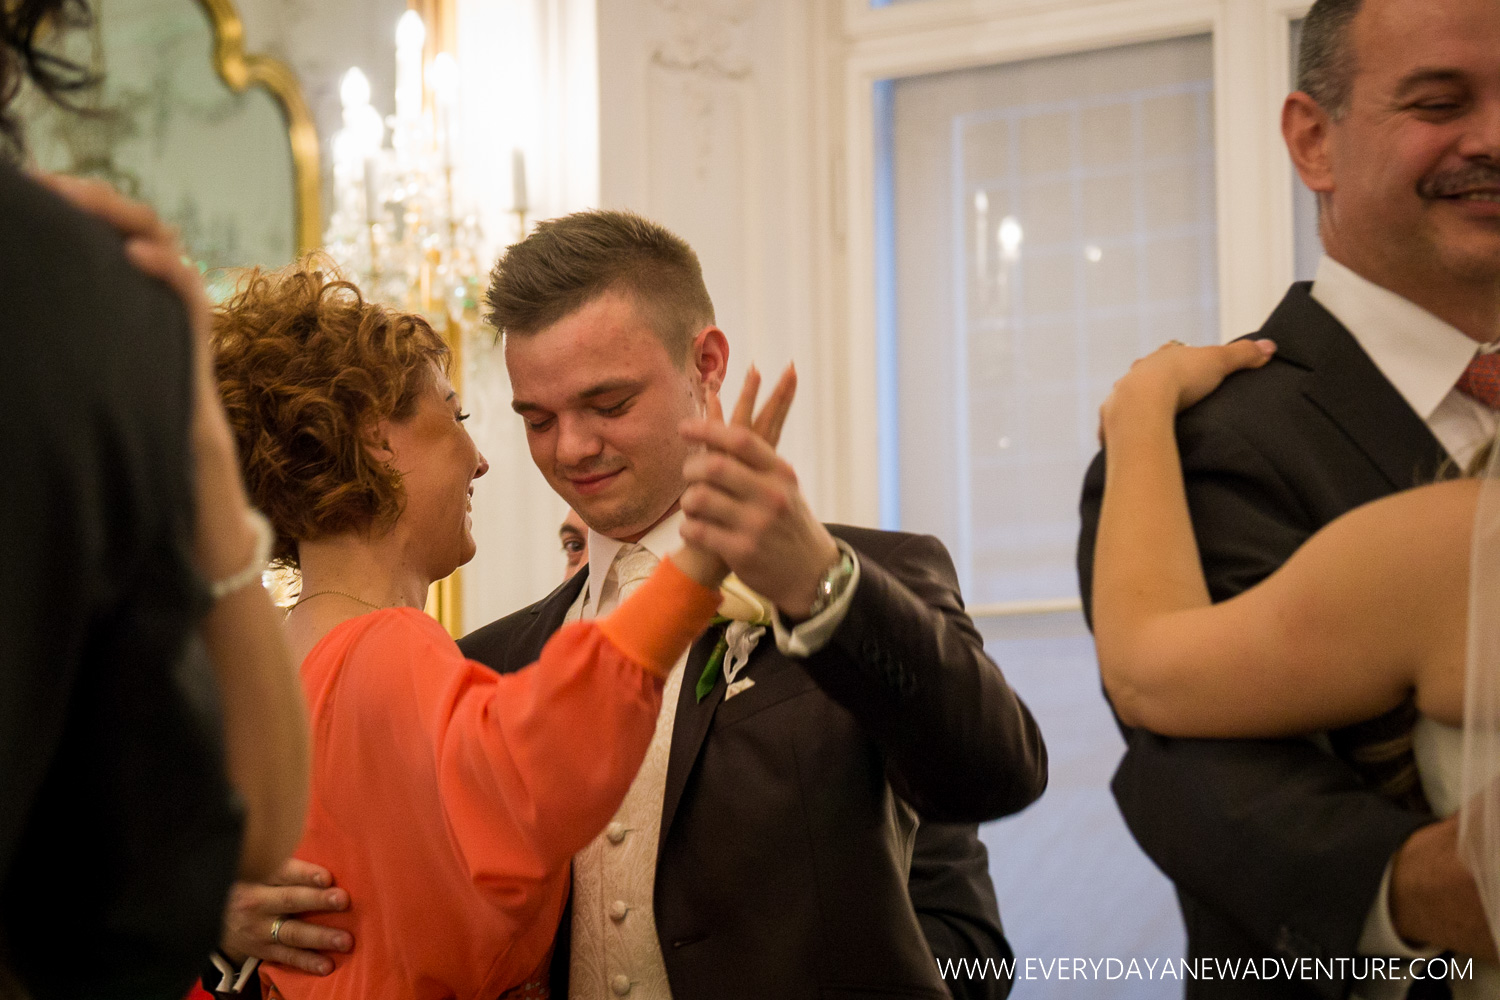 [SqSp1500-033] Budapest - Inez and Arni's Wedding!-311.jpg